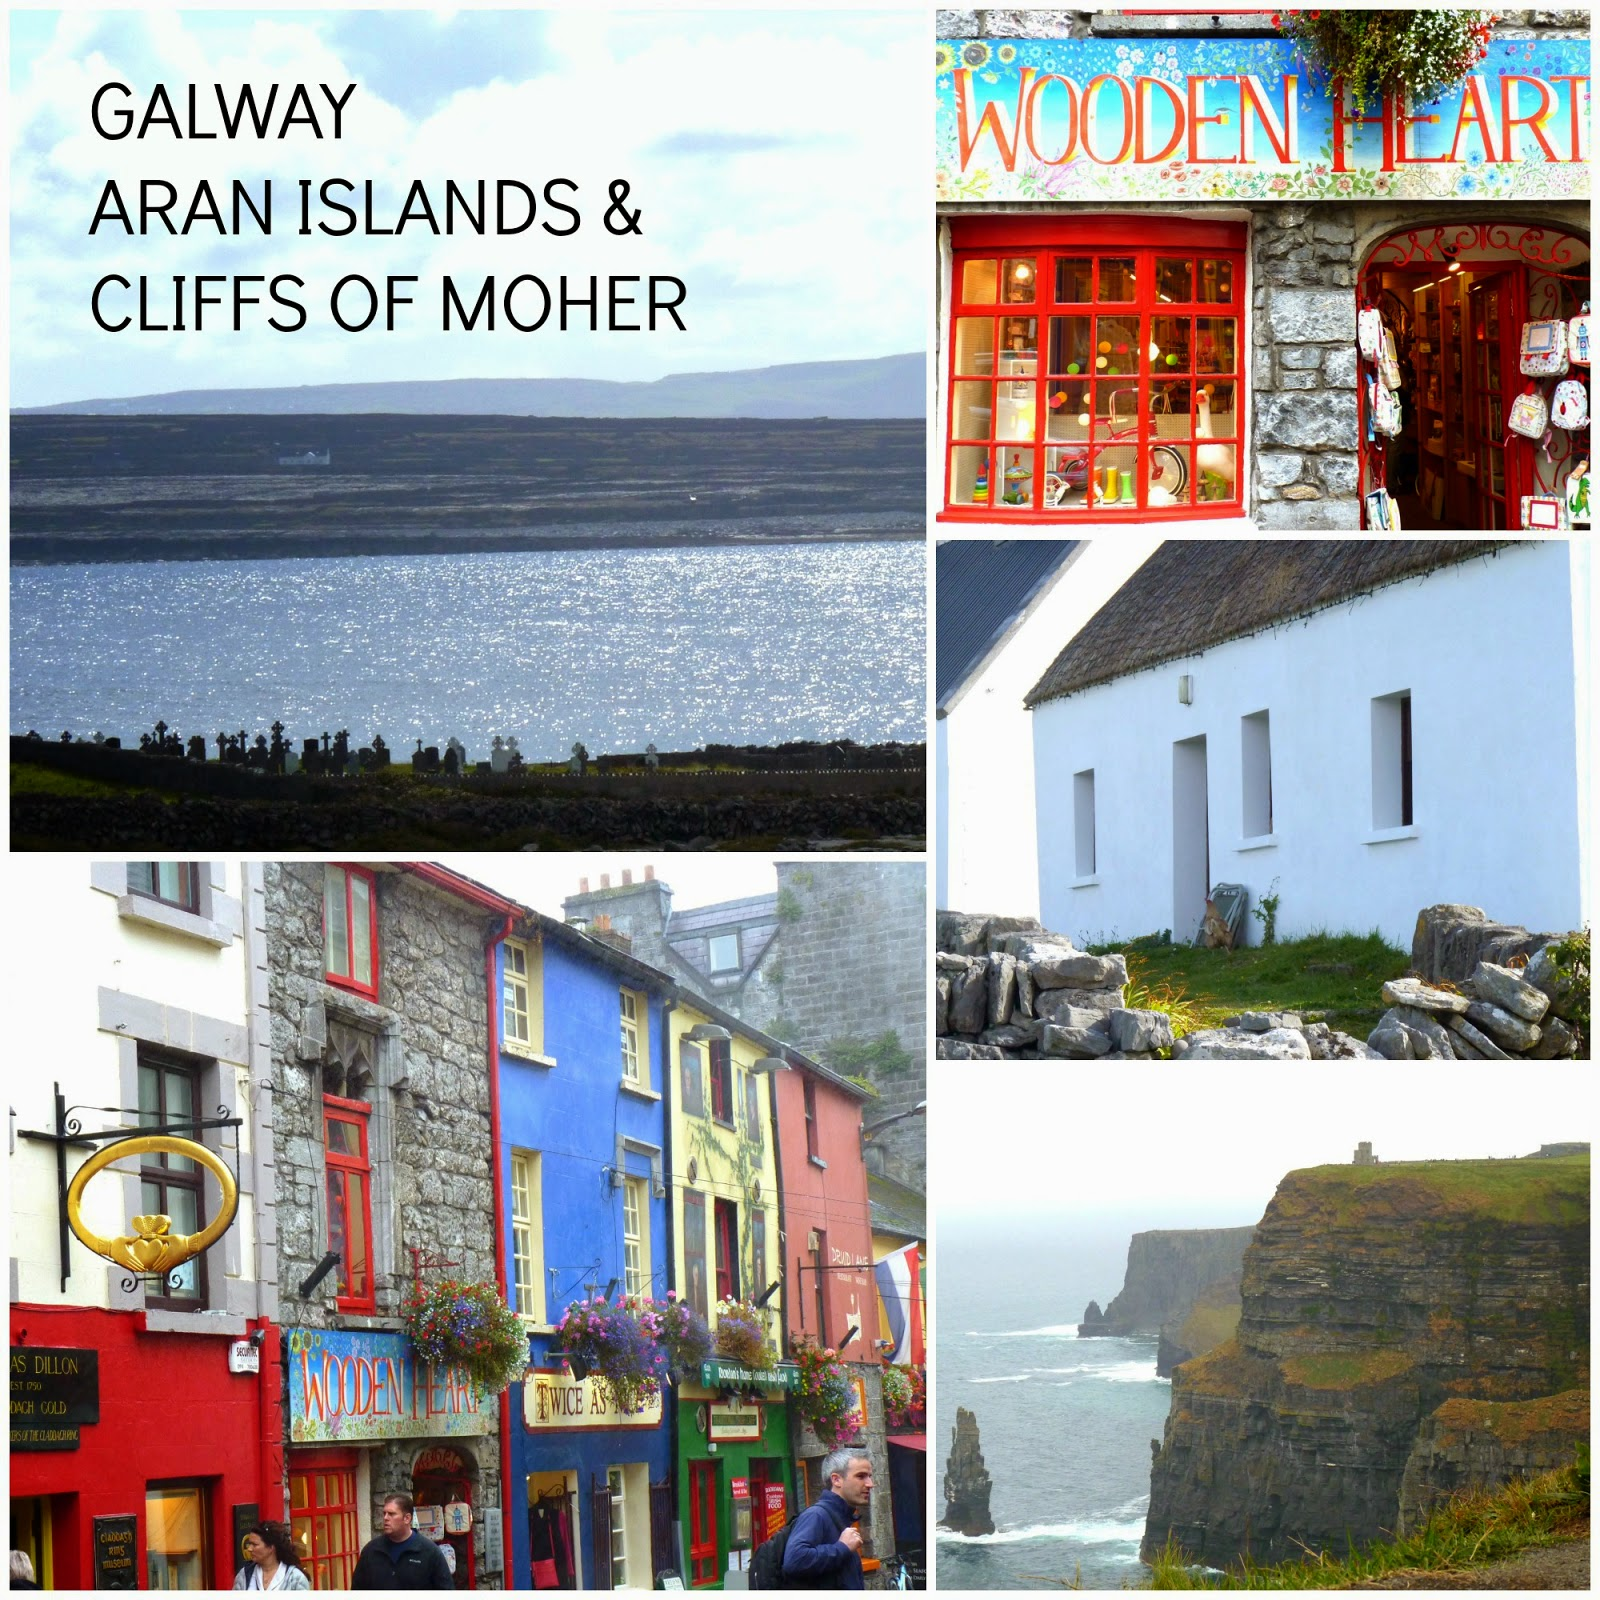 Galway - Aran Islands - Cliffs of Moher Irlanda